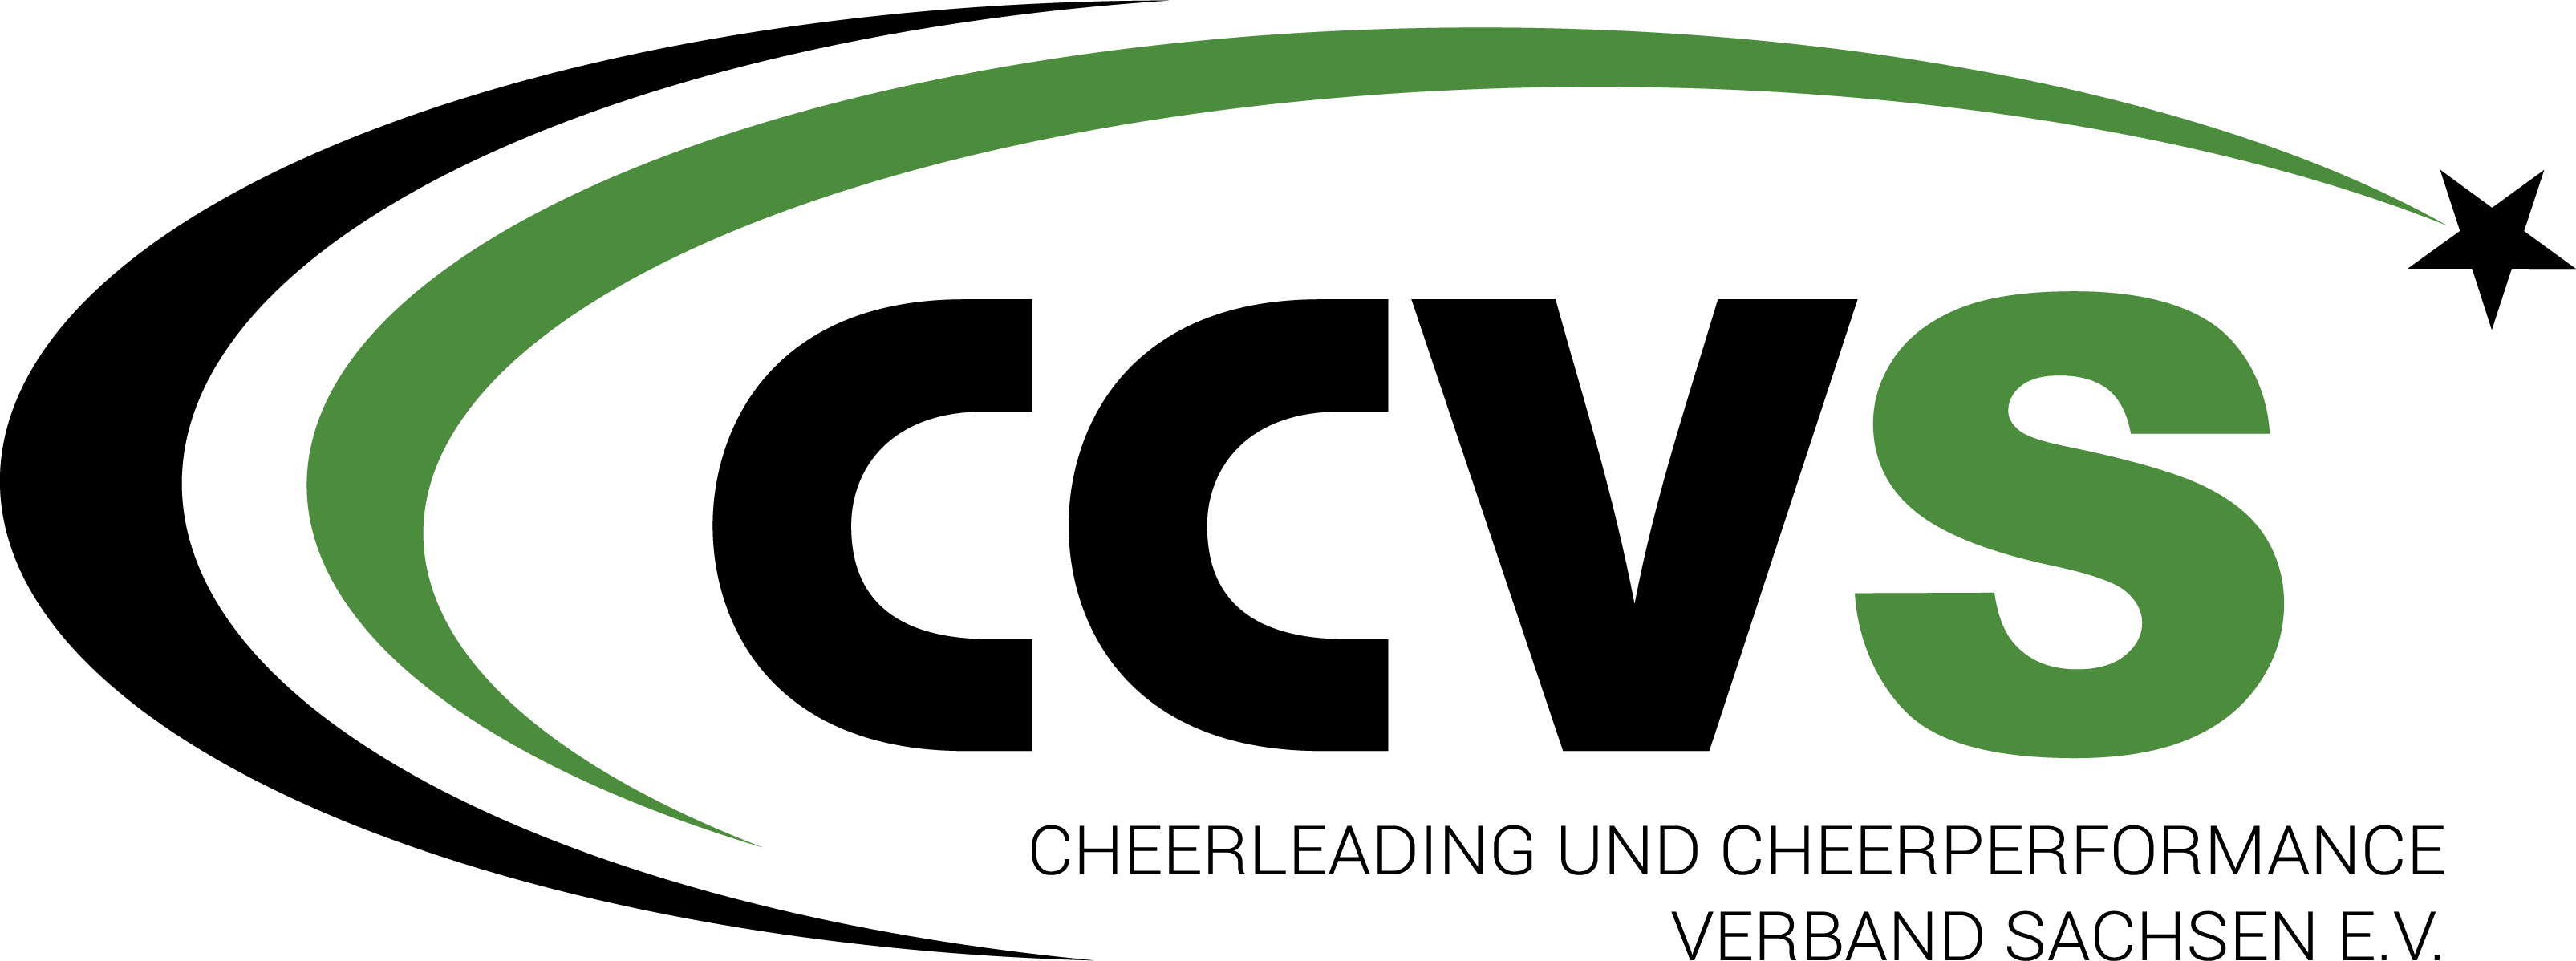 Cheerleading und Cheerperformance Verband Sachsen e.V.